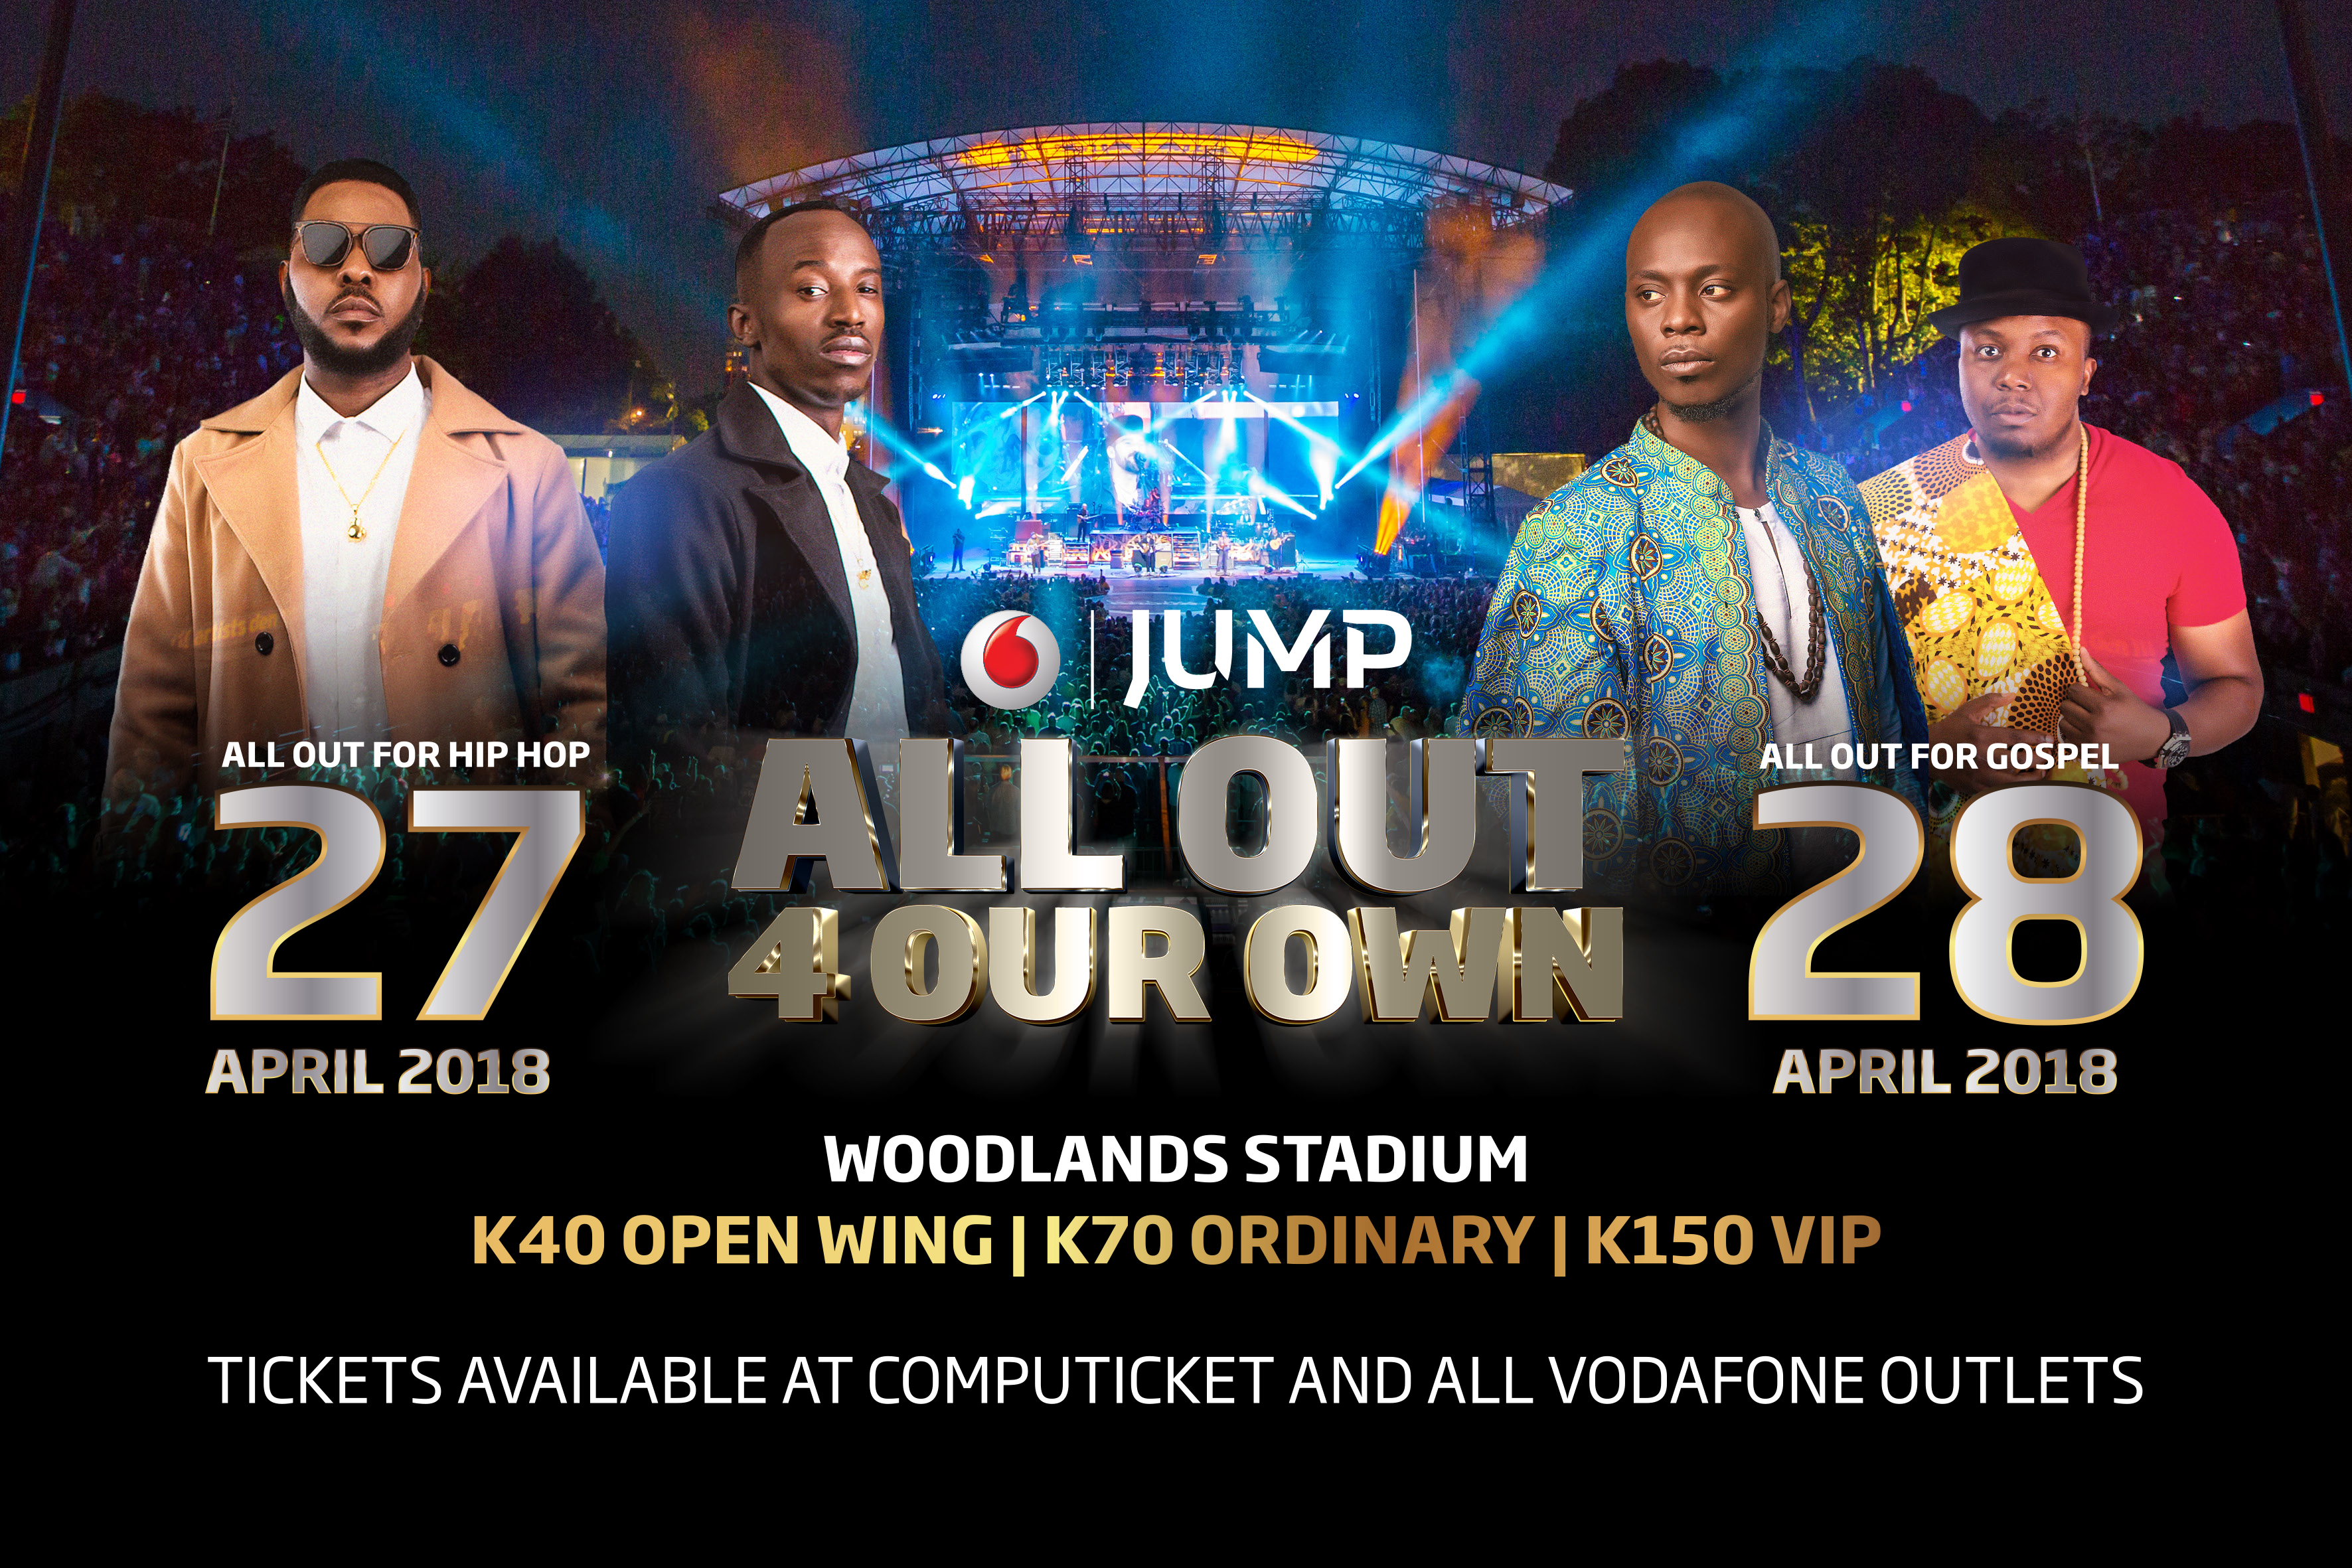 #AllOut4OurOwn Concert to Take Over Woodlands Stadium, 27th & 28th April!